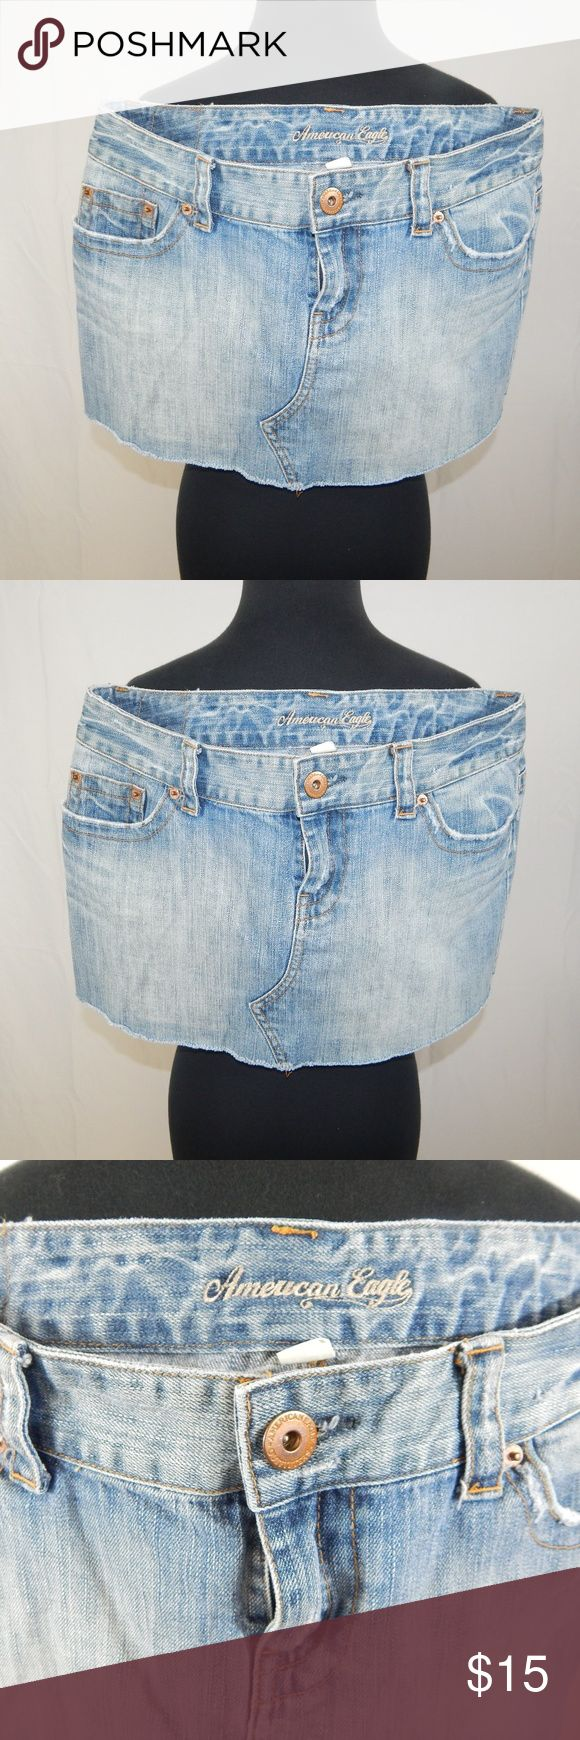 American Eagle Outfitters Denim Mini Skirt size 10 American Eagle Outfitters Jean Mini Skirt size 10 All Items are inspected and pictured before shipment in order to ensure top quality!! Bundle and Save!! Happy Poshing!!!  Brought to you by: Ari's Chic Dowri ;) American Eagle Outfitters Skirts Mini